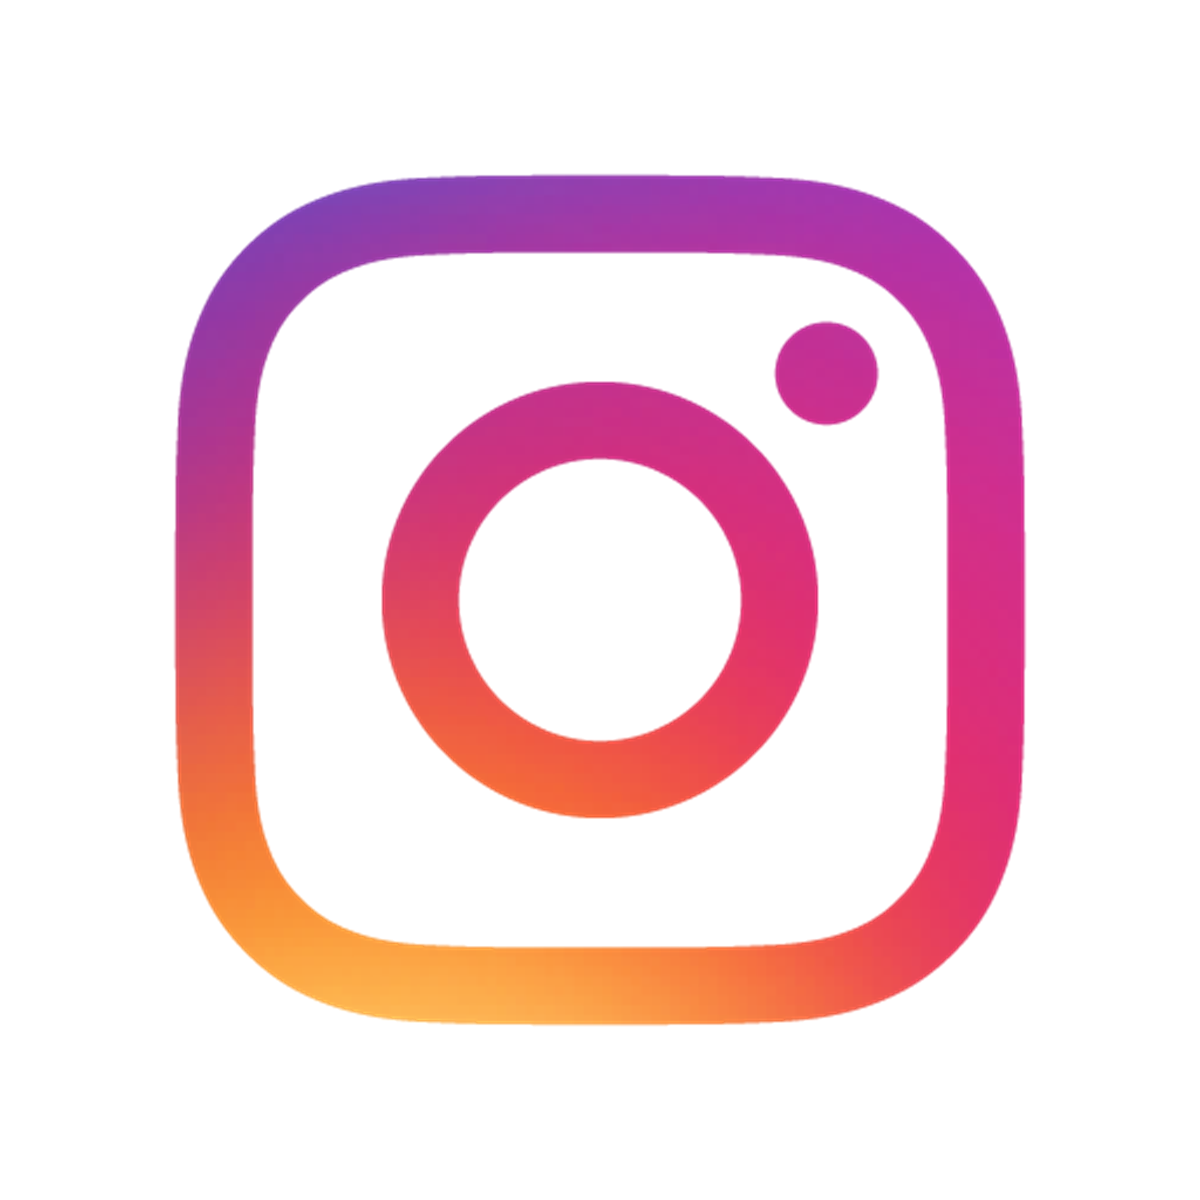 A website is selling. Instagram clipart hi res